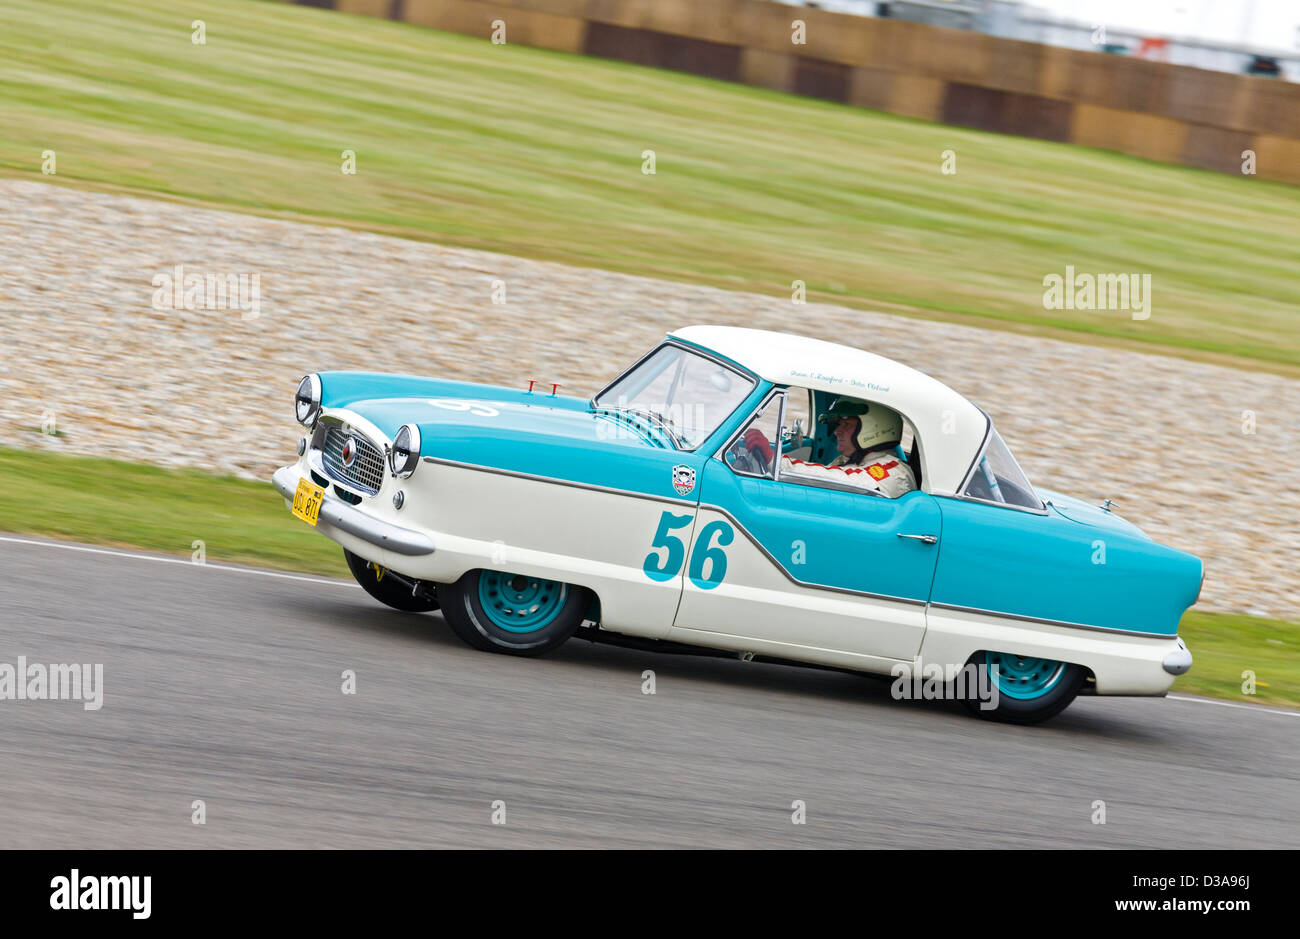 1956 Austin Metropolitan with driver Shaun Rainford during the St Mary's race at the 2012 Goodwood Revival, - Stock Image